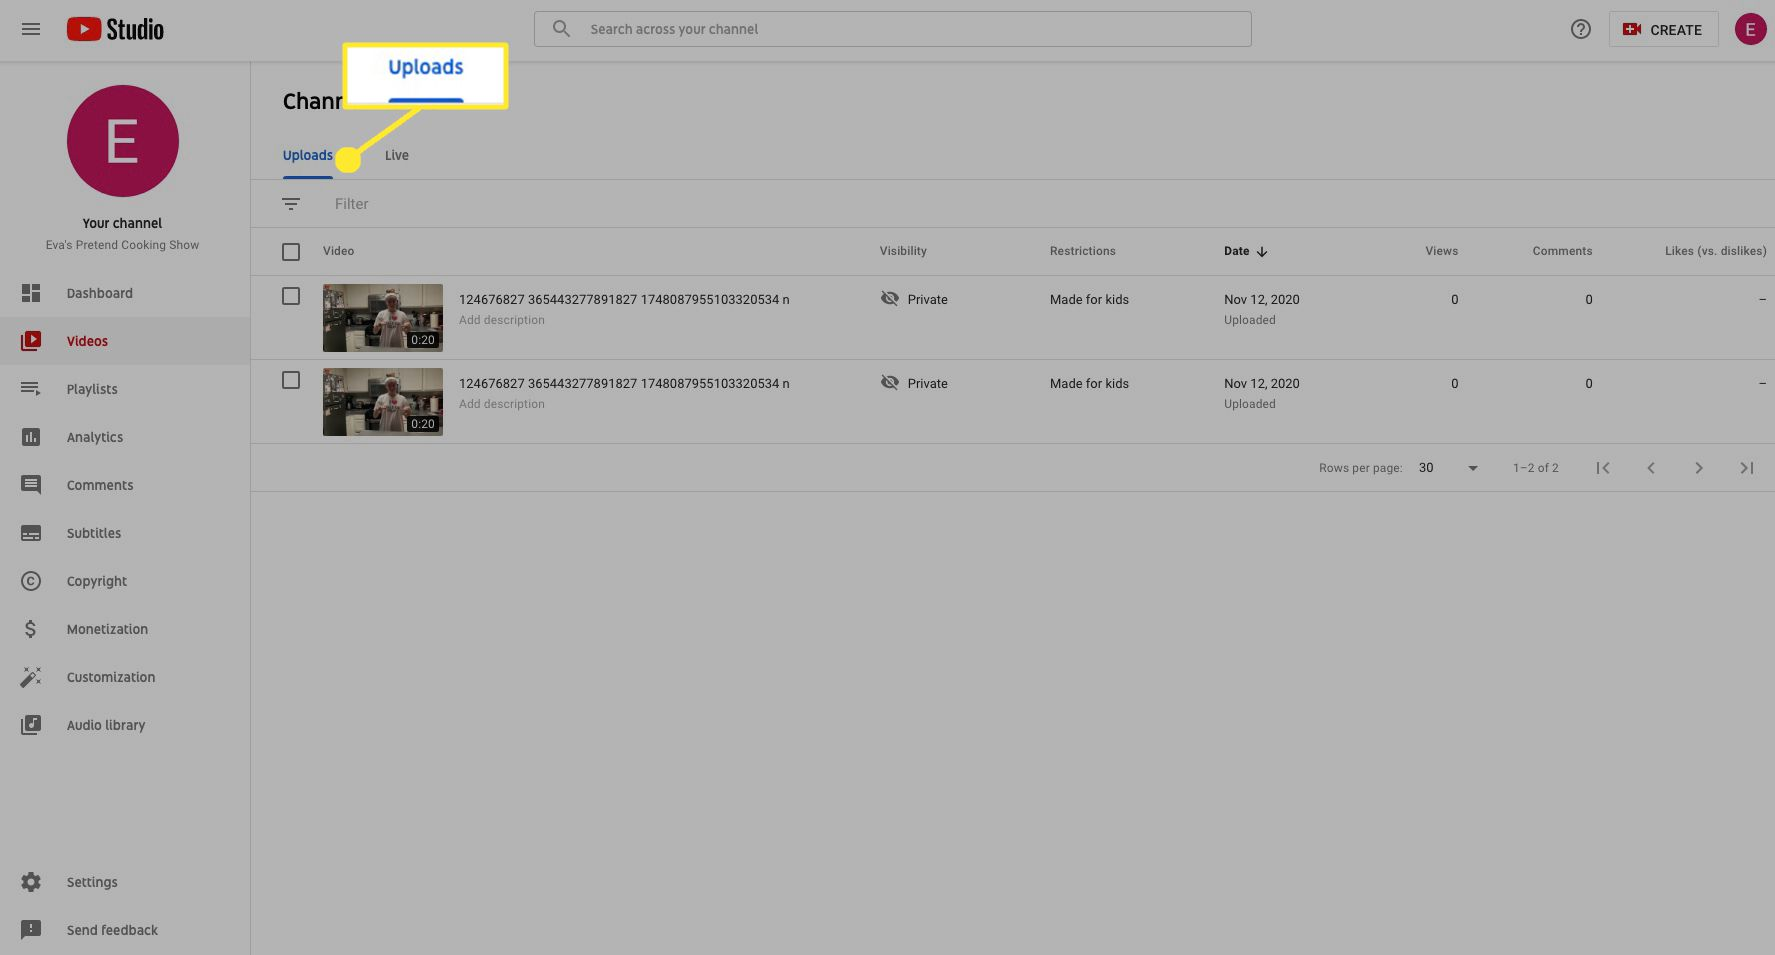 Under Uploads, you'll see any videos you've uploaded to your channel.